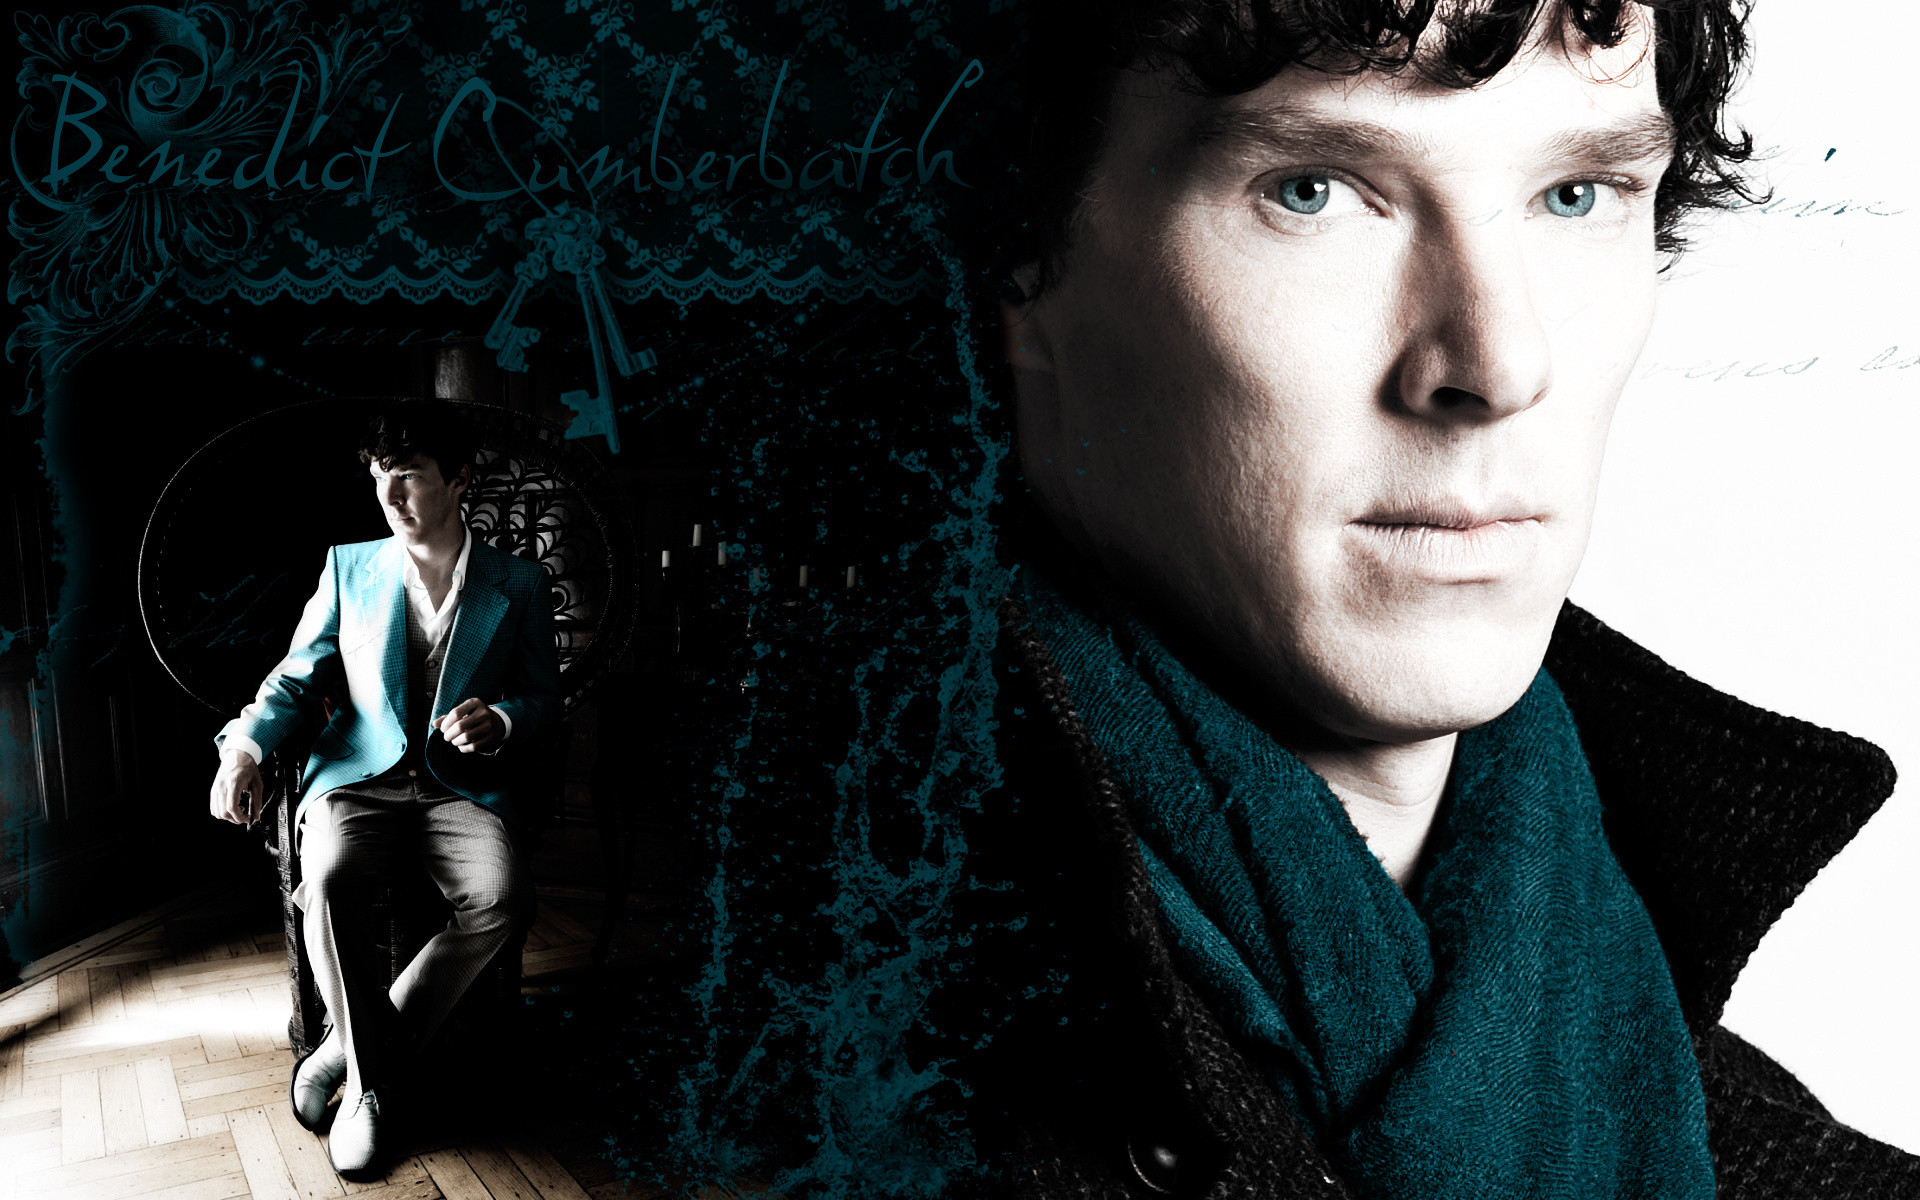 Benedict Cumberbatch HD wallpapers for PC | Movie Stars Pictures |  BC/Sherlock | Pinterest | Benedict cumberbatch and Sherlock